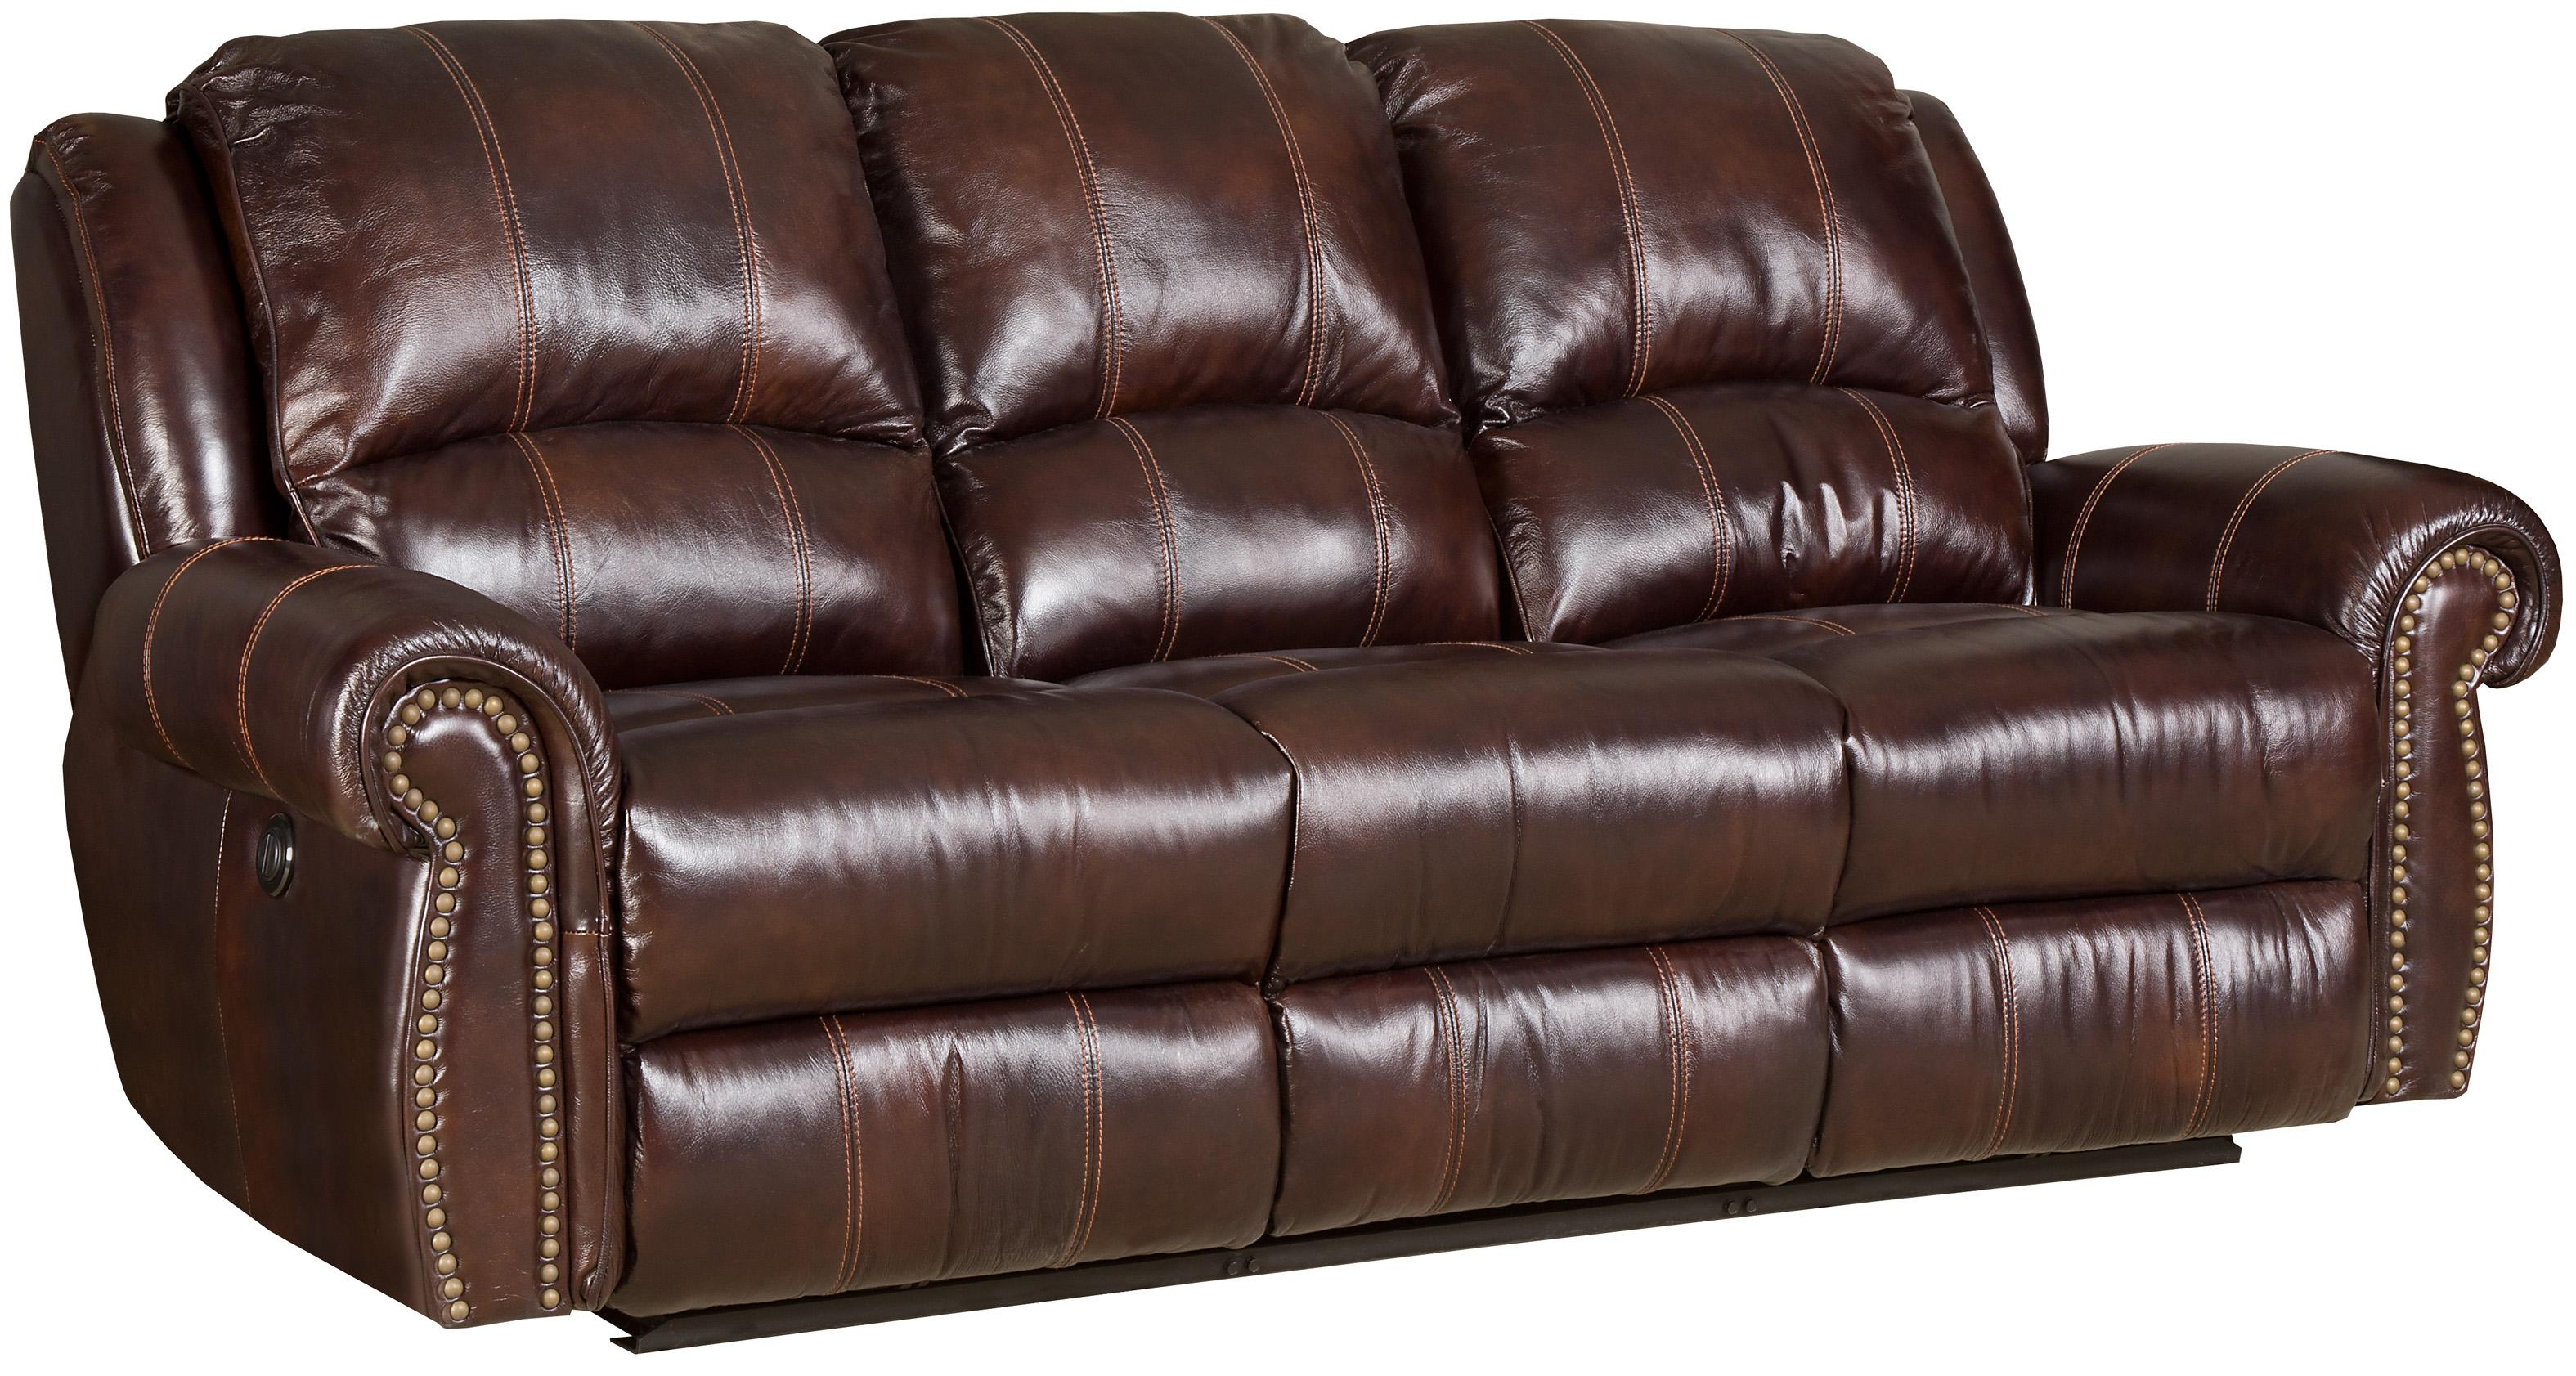 Hooker Furniture SS611 Power Sofa With 2 Recliners - Item Number: SS611-PR-03-068